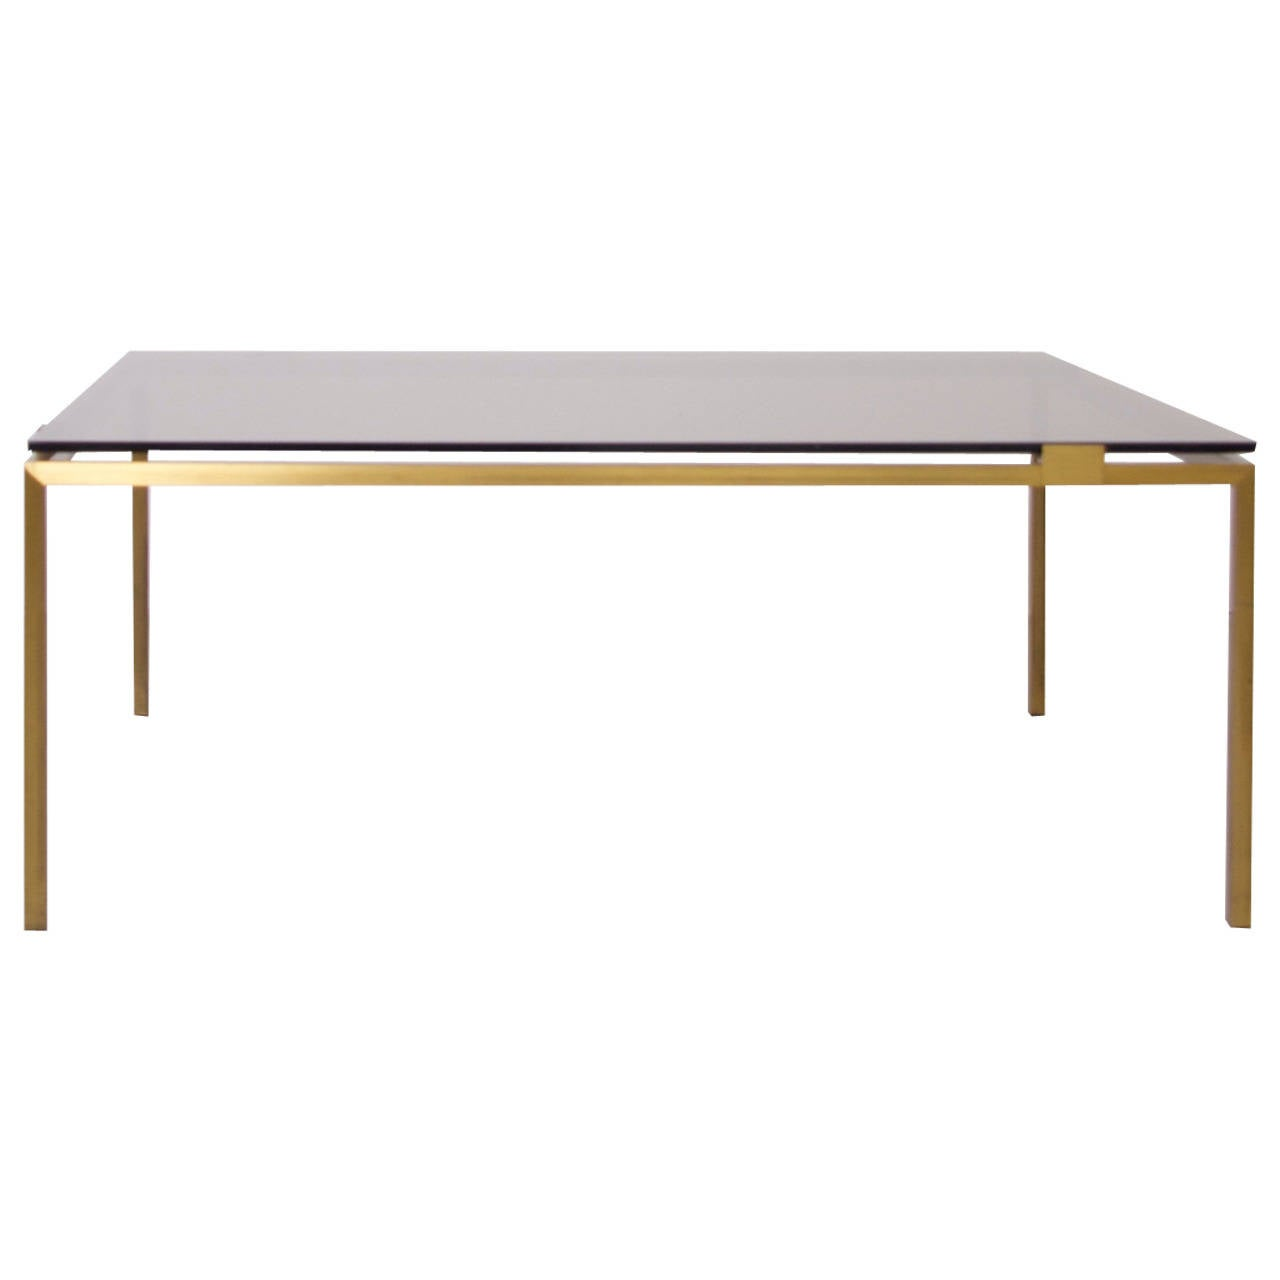 Elegant Brass And Glass Coffee Table In The Manner Of Maison Jansen For Sale At 1stdibs